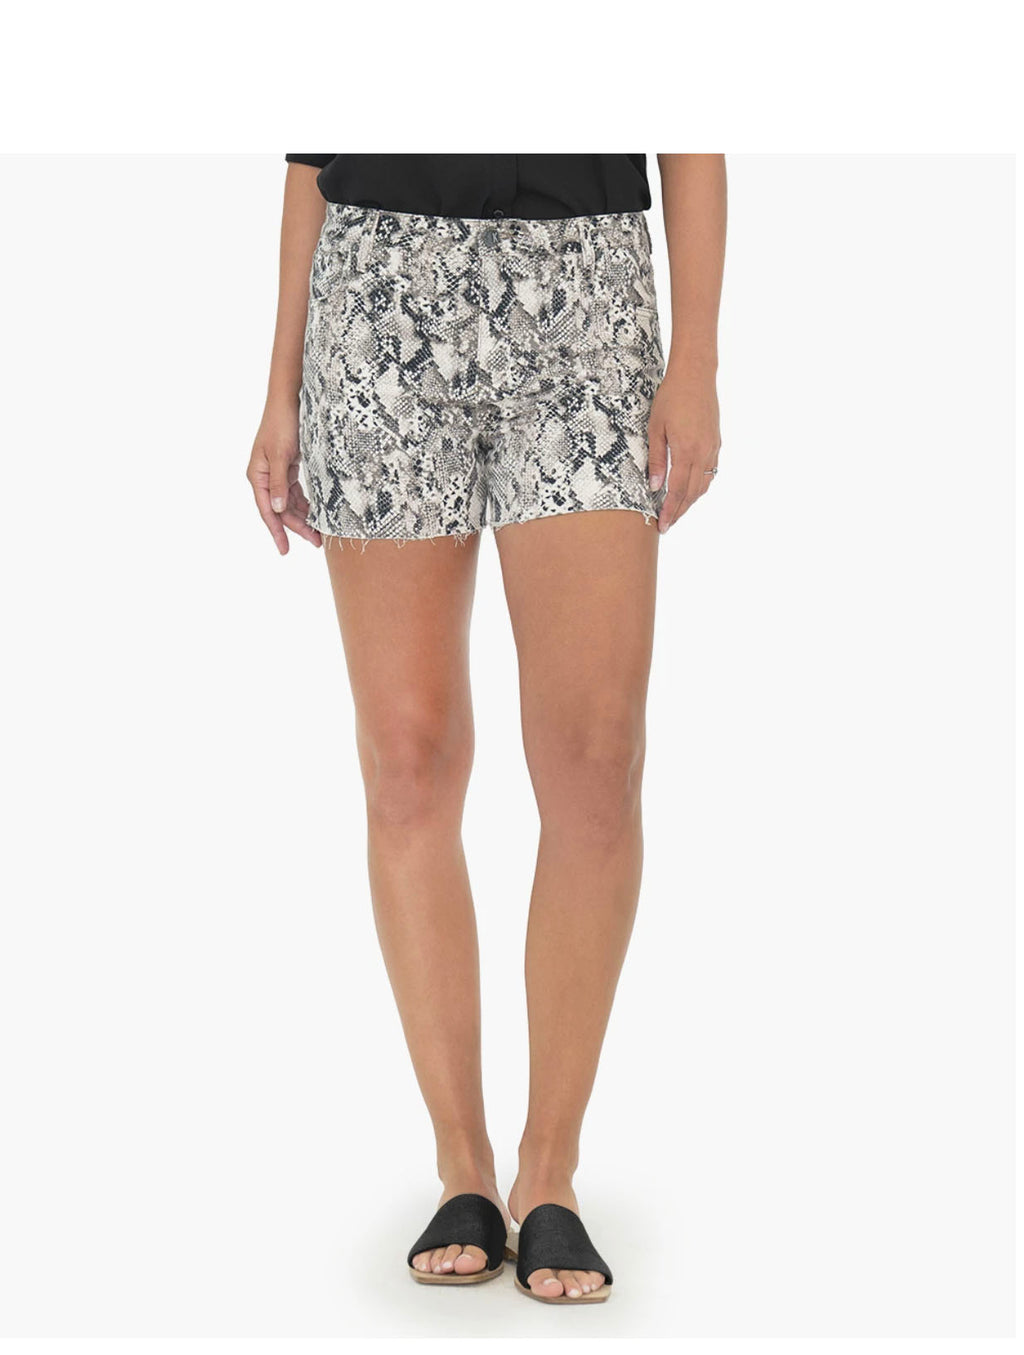 Kut From The Kloth Gidget High Rise Short in Snake